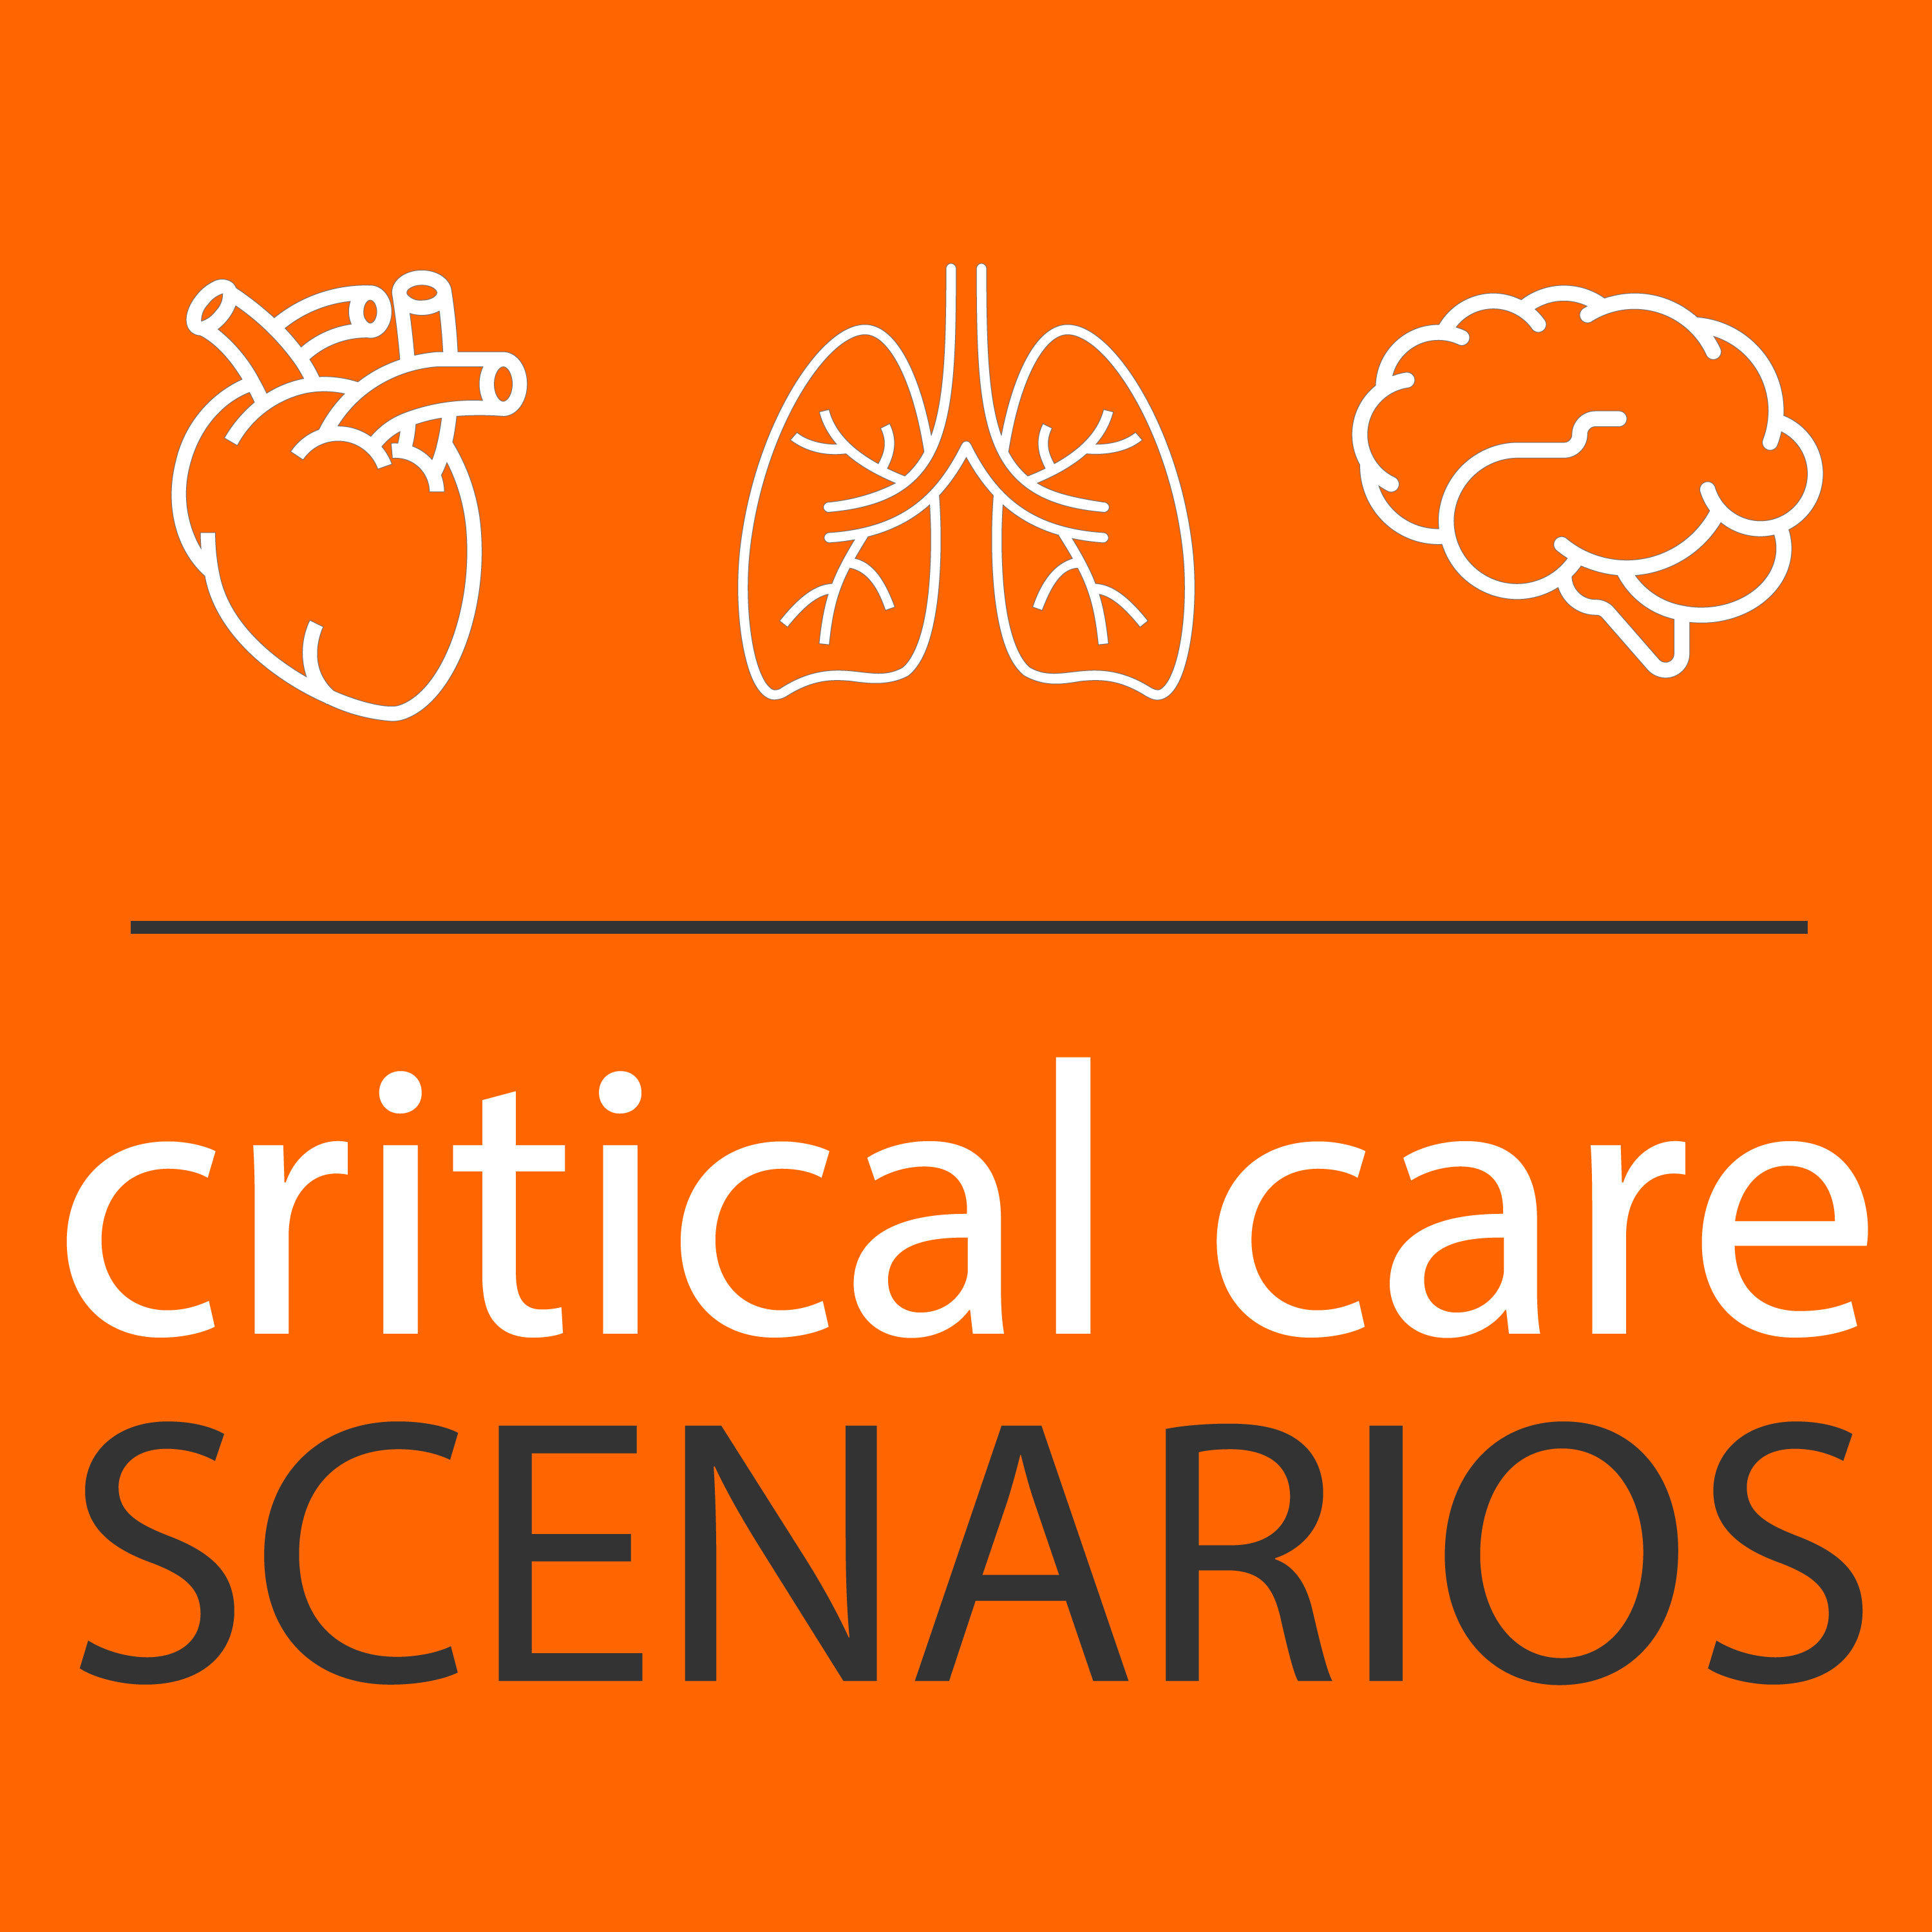 Critical Care Scenarios